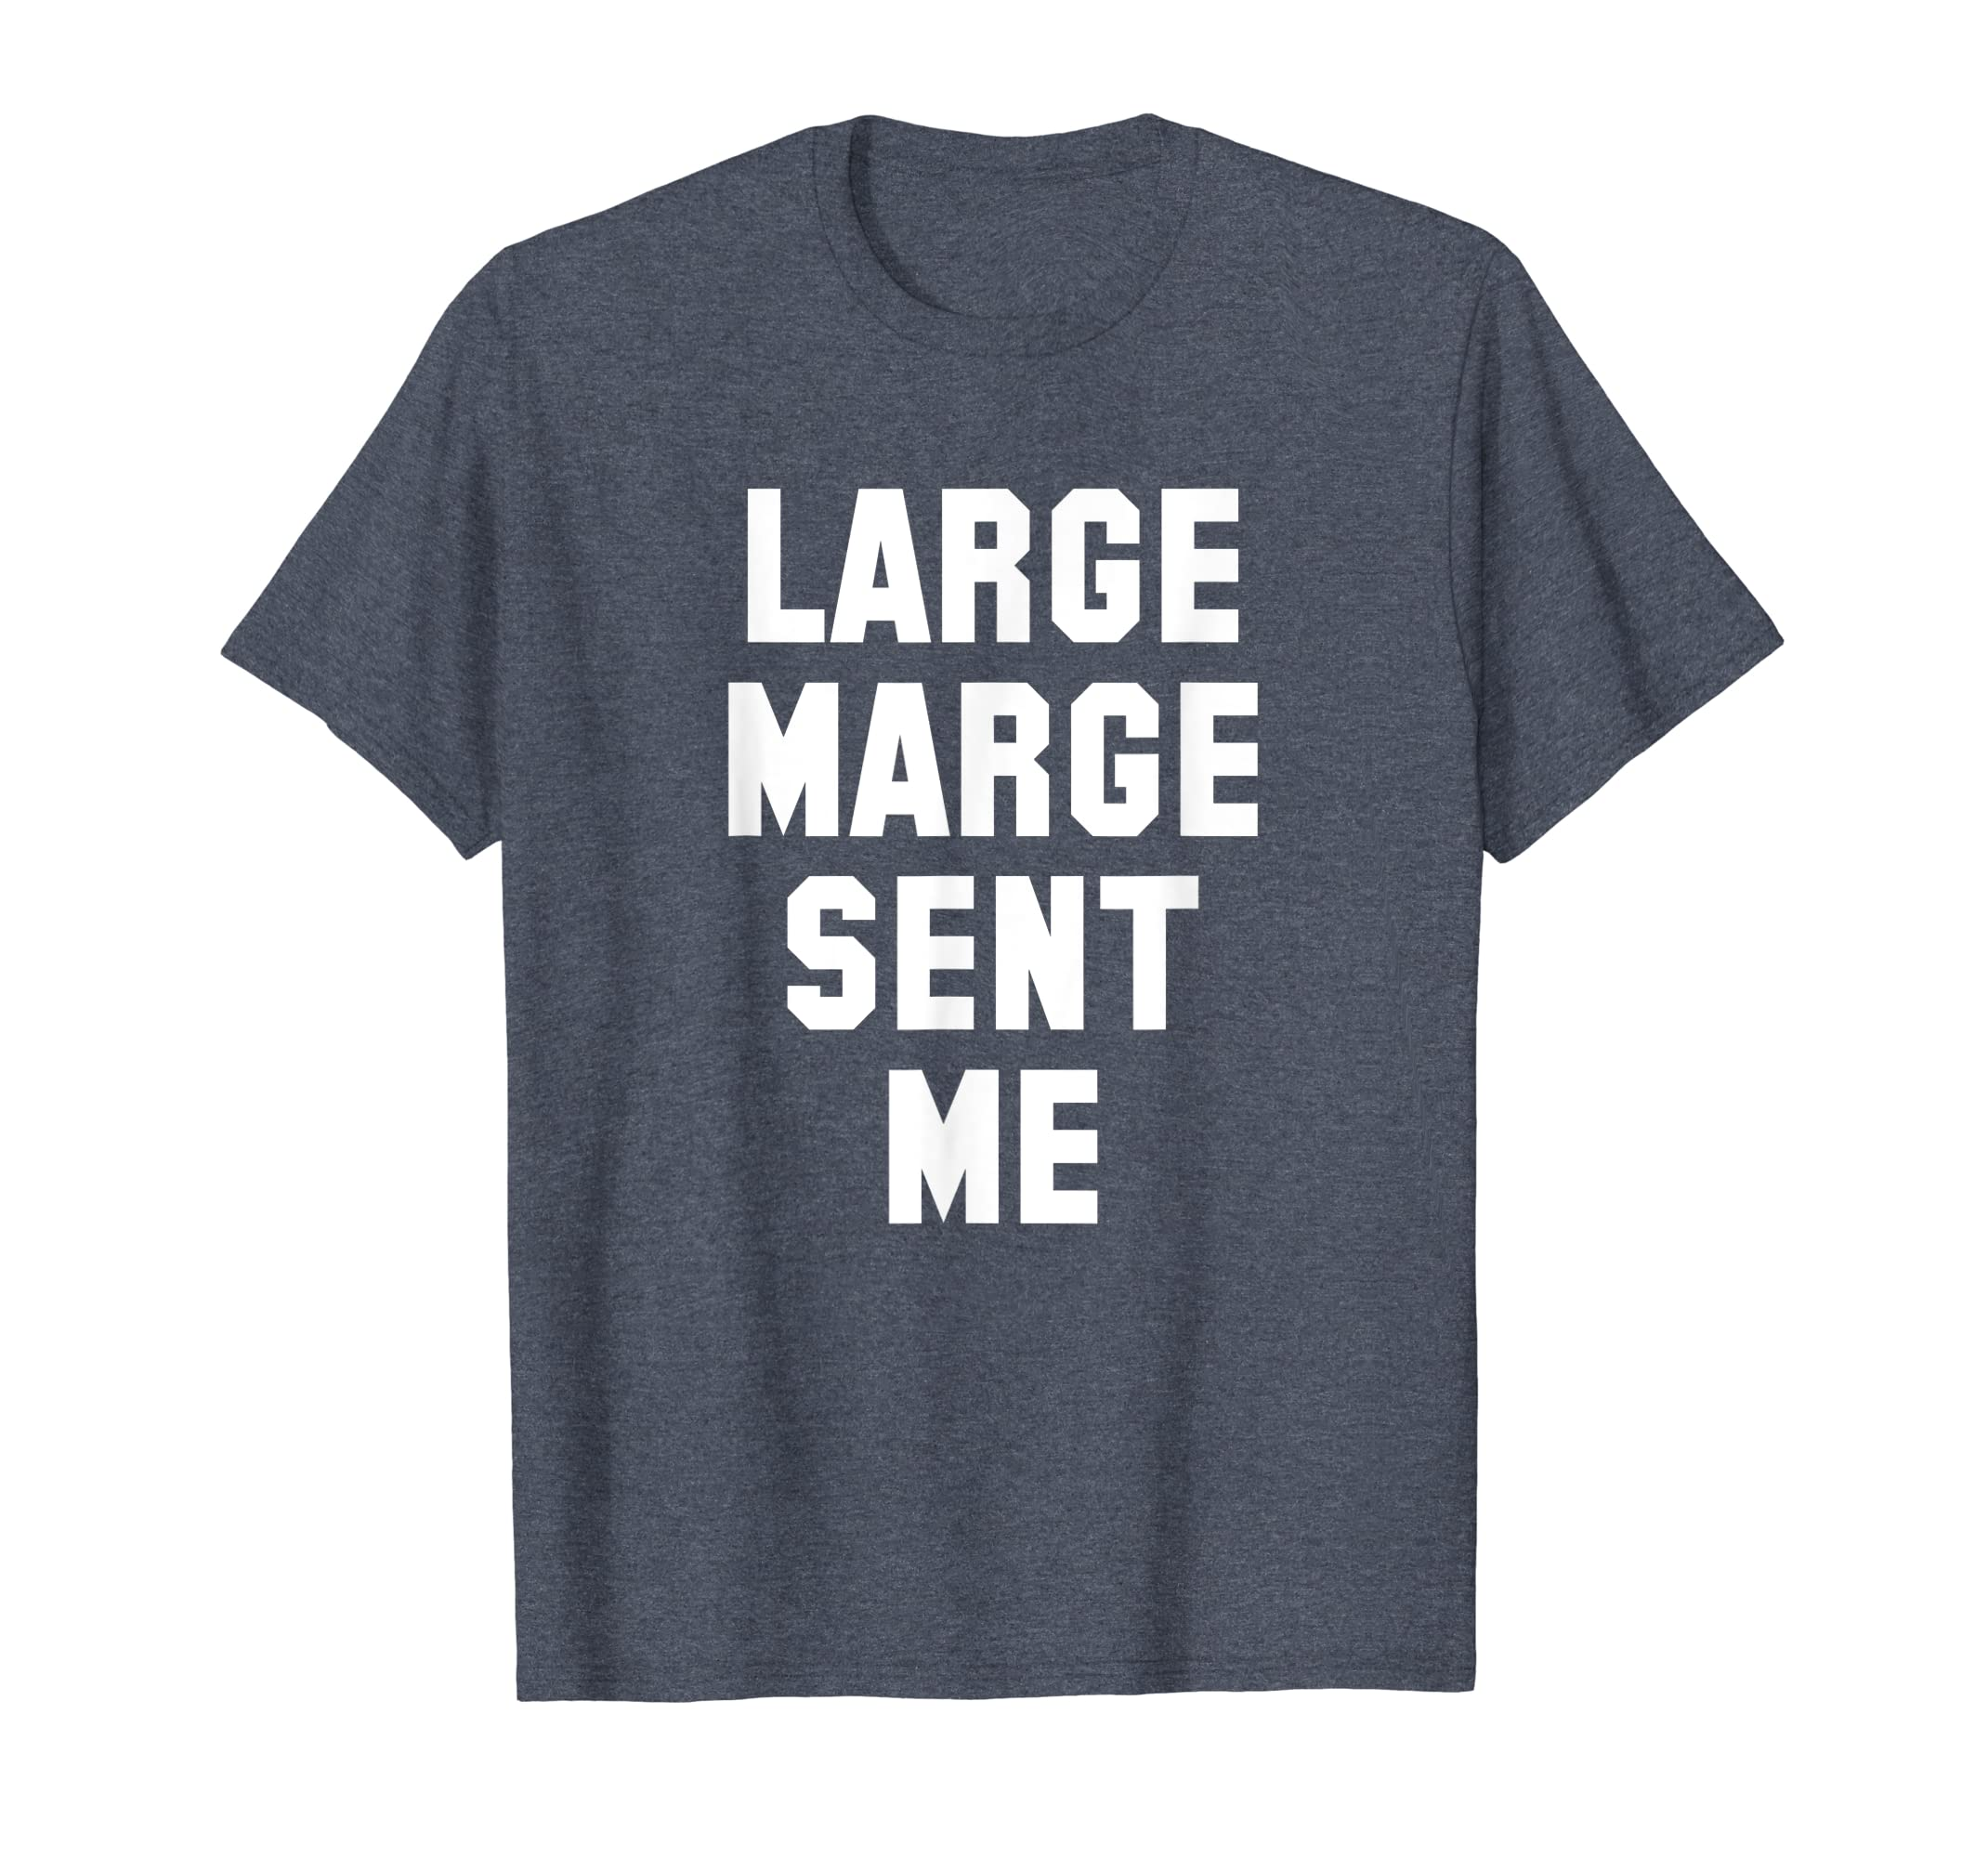 3e9bc2706 Amazon.com: Large Marge Sent Me Funny Gift T Shirt For Men, Women, Kids:  Clothing